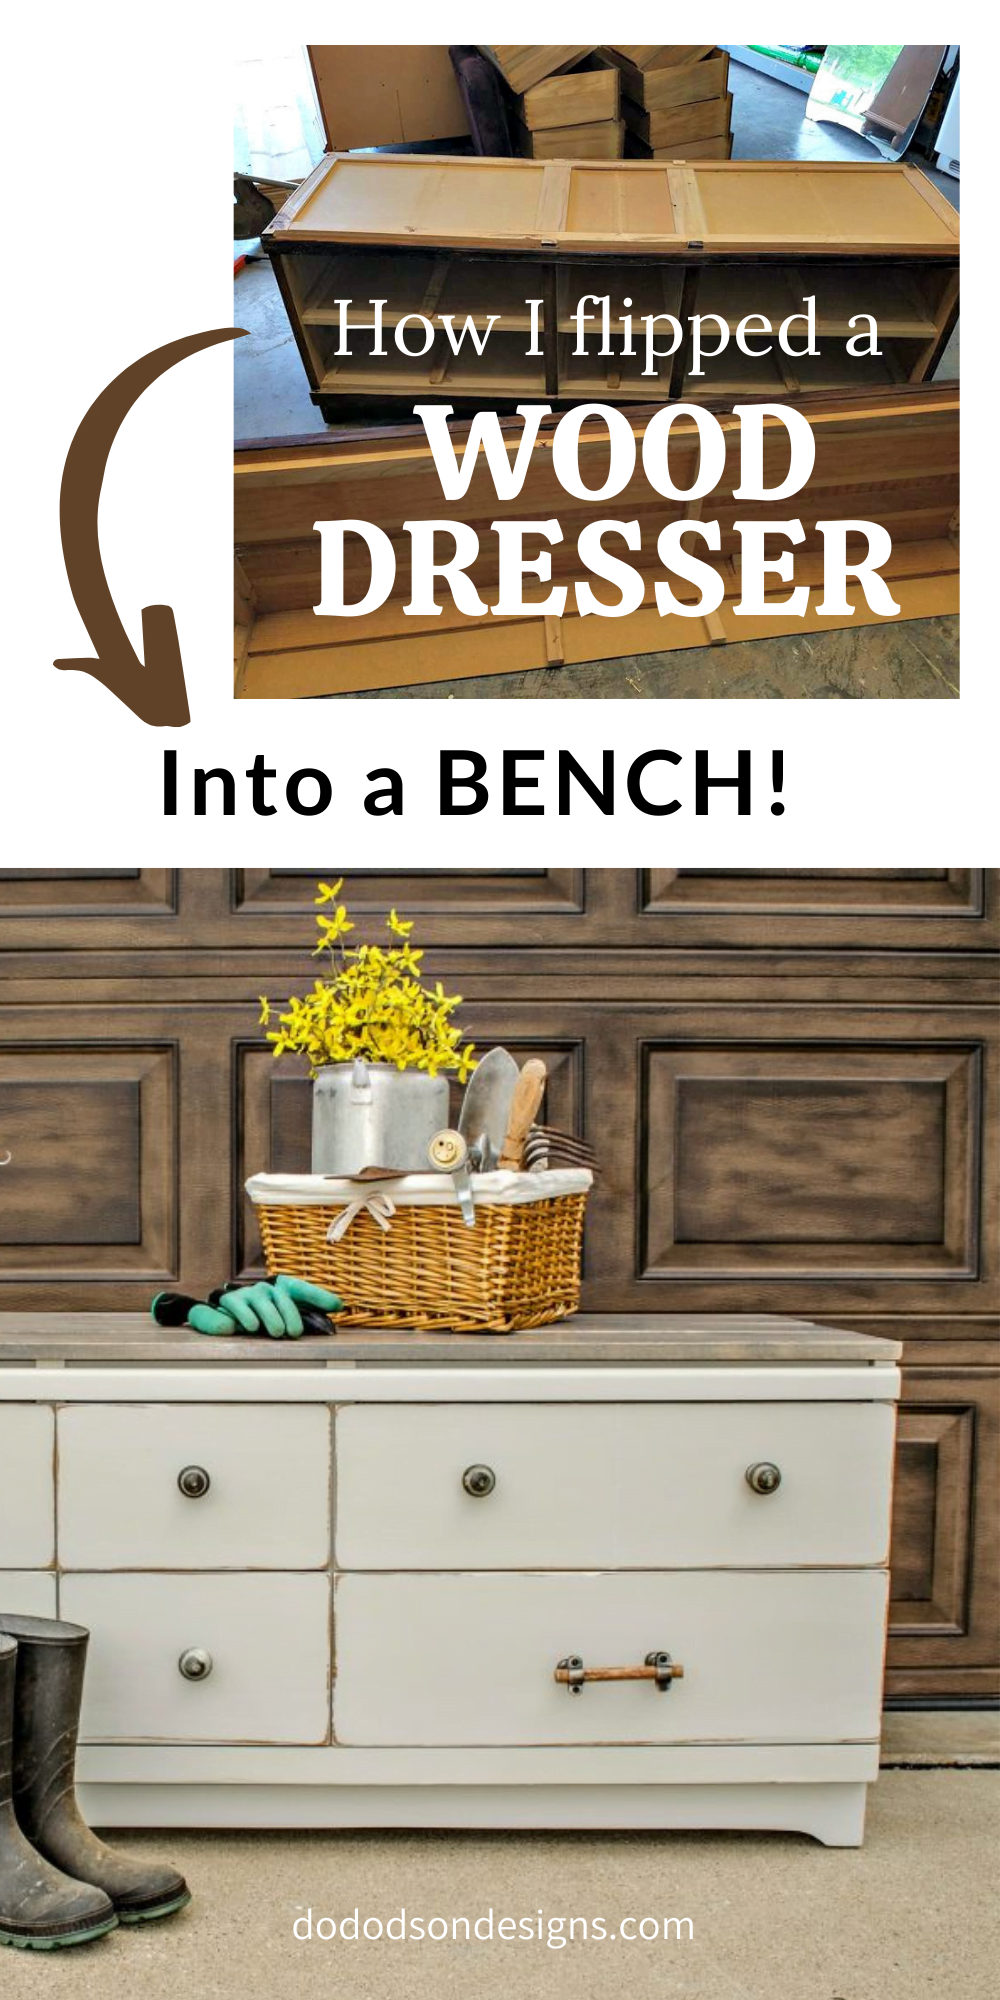 How To Make A Wood Dresser Into A Bench